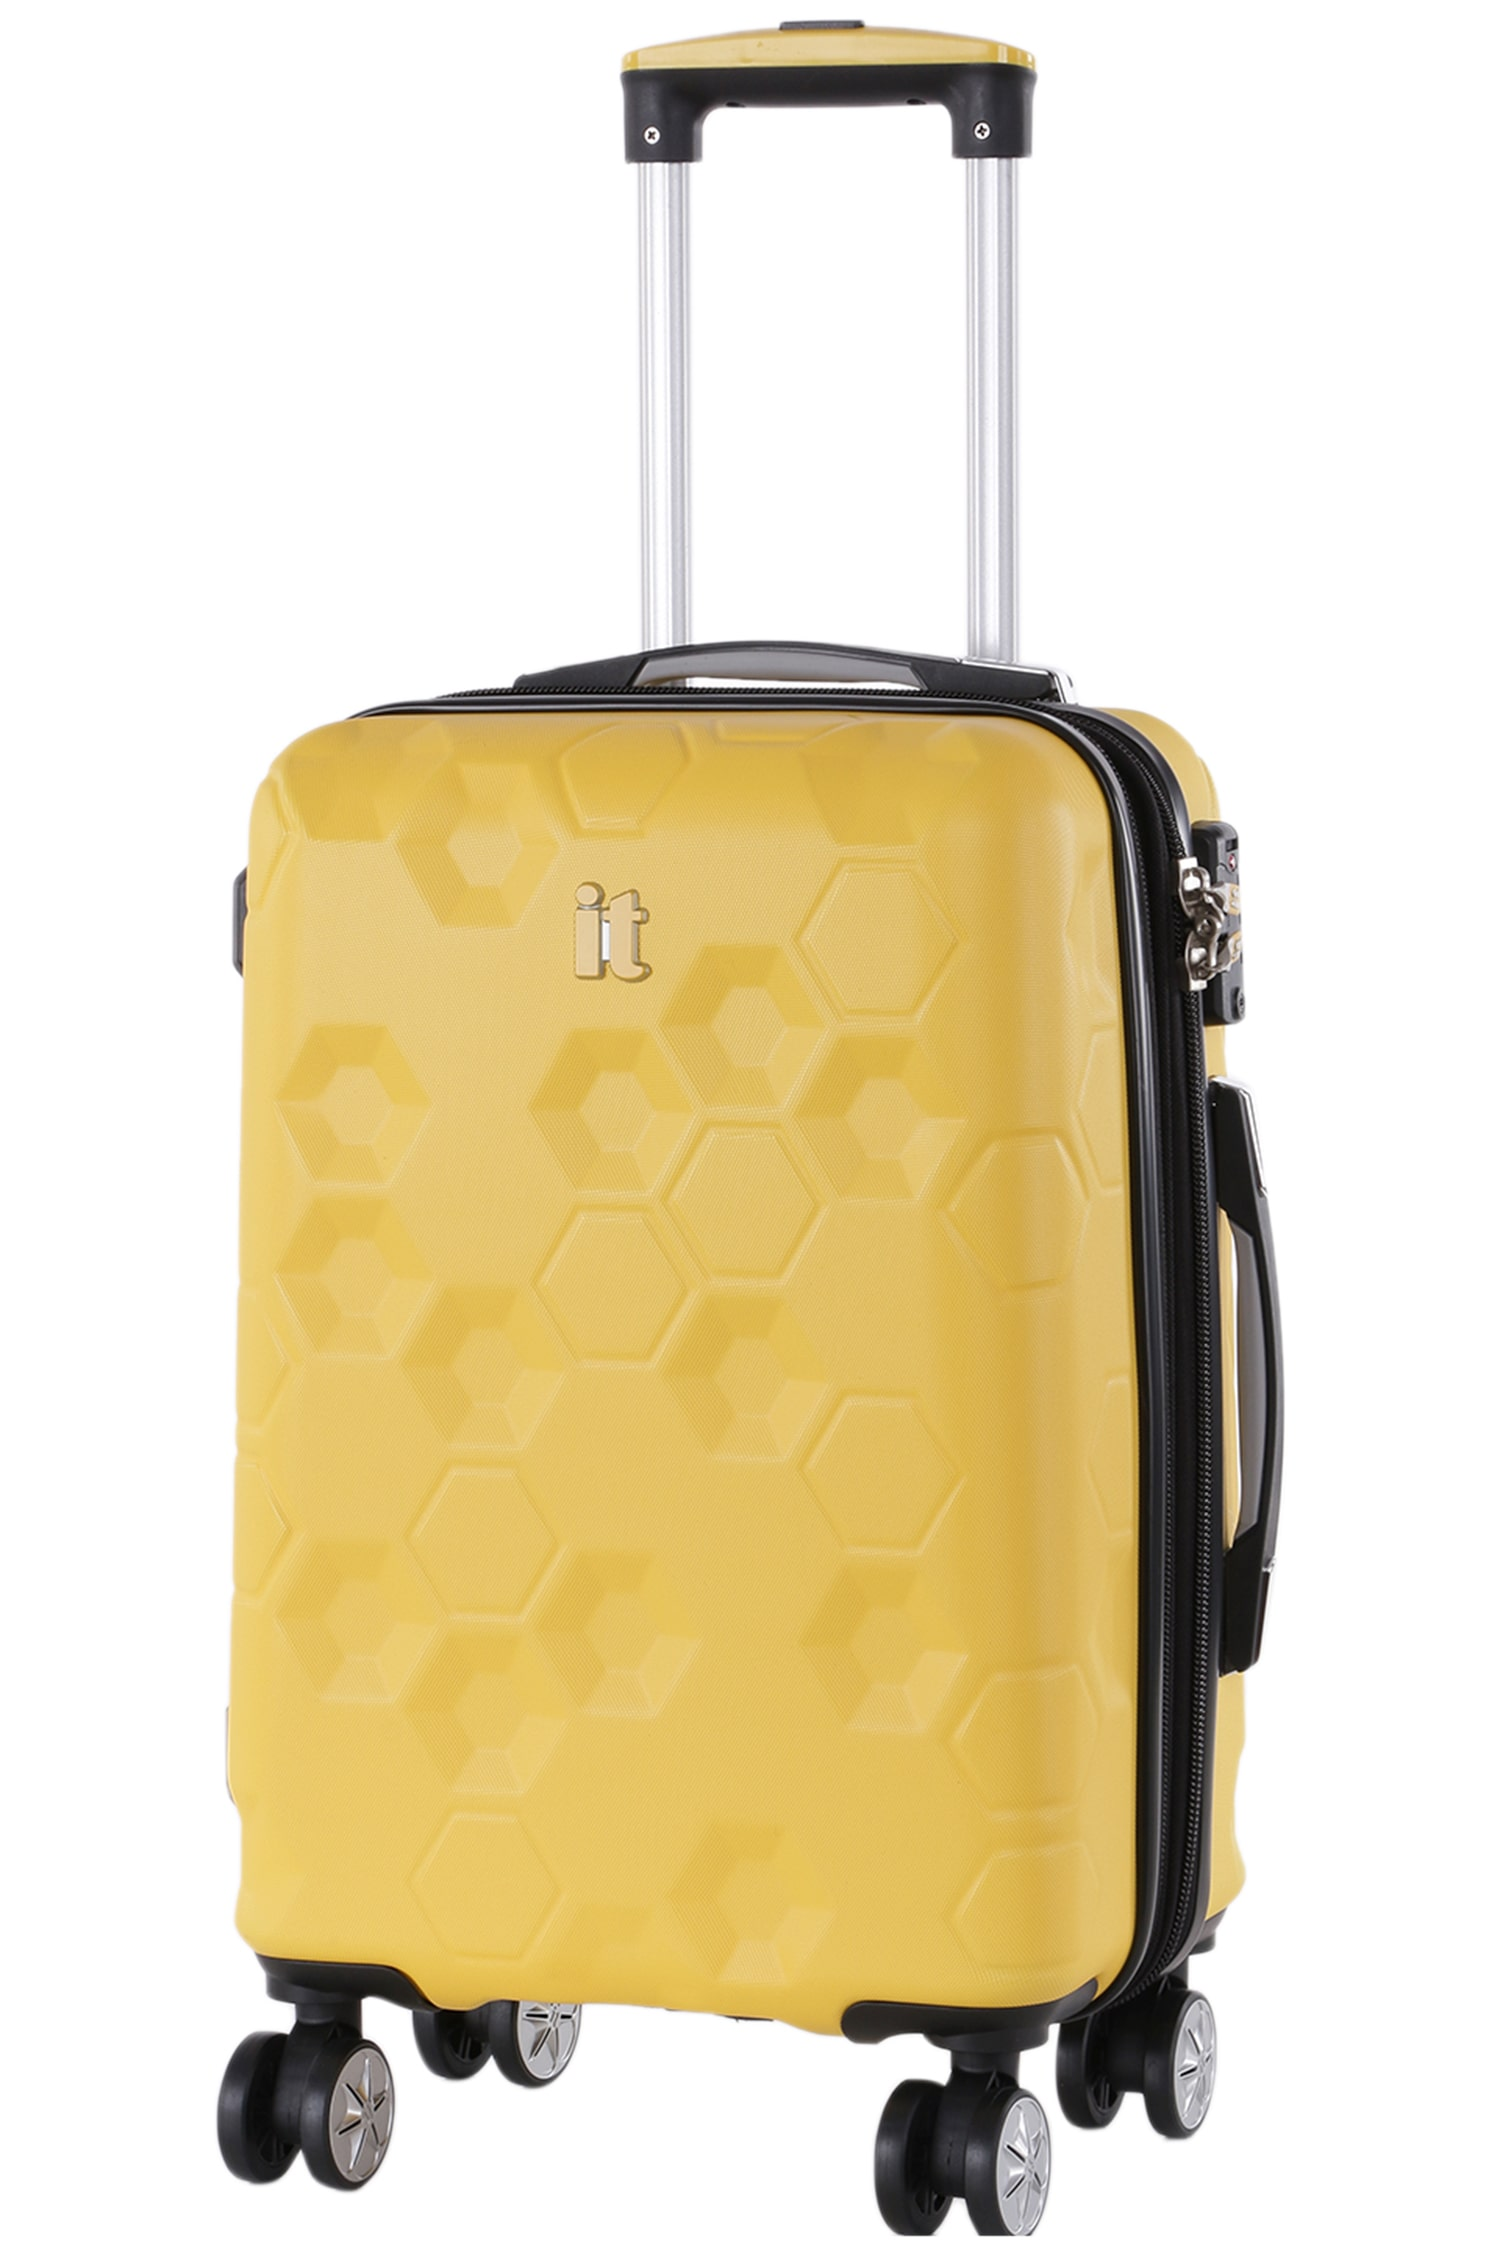 https://assetscdn1.paytm.com/images/catalog/product/B/BA/BAGIT-LUGGAGE-PPL-T1082484FFD32088/0..jpg